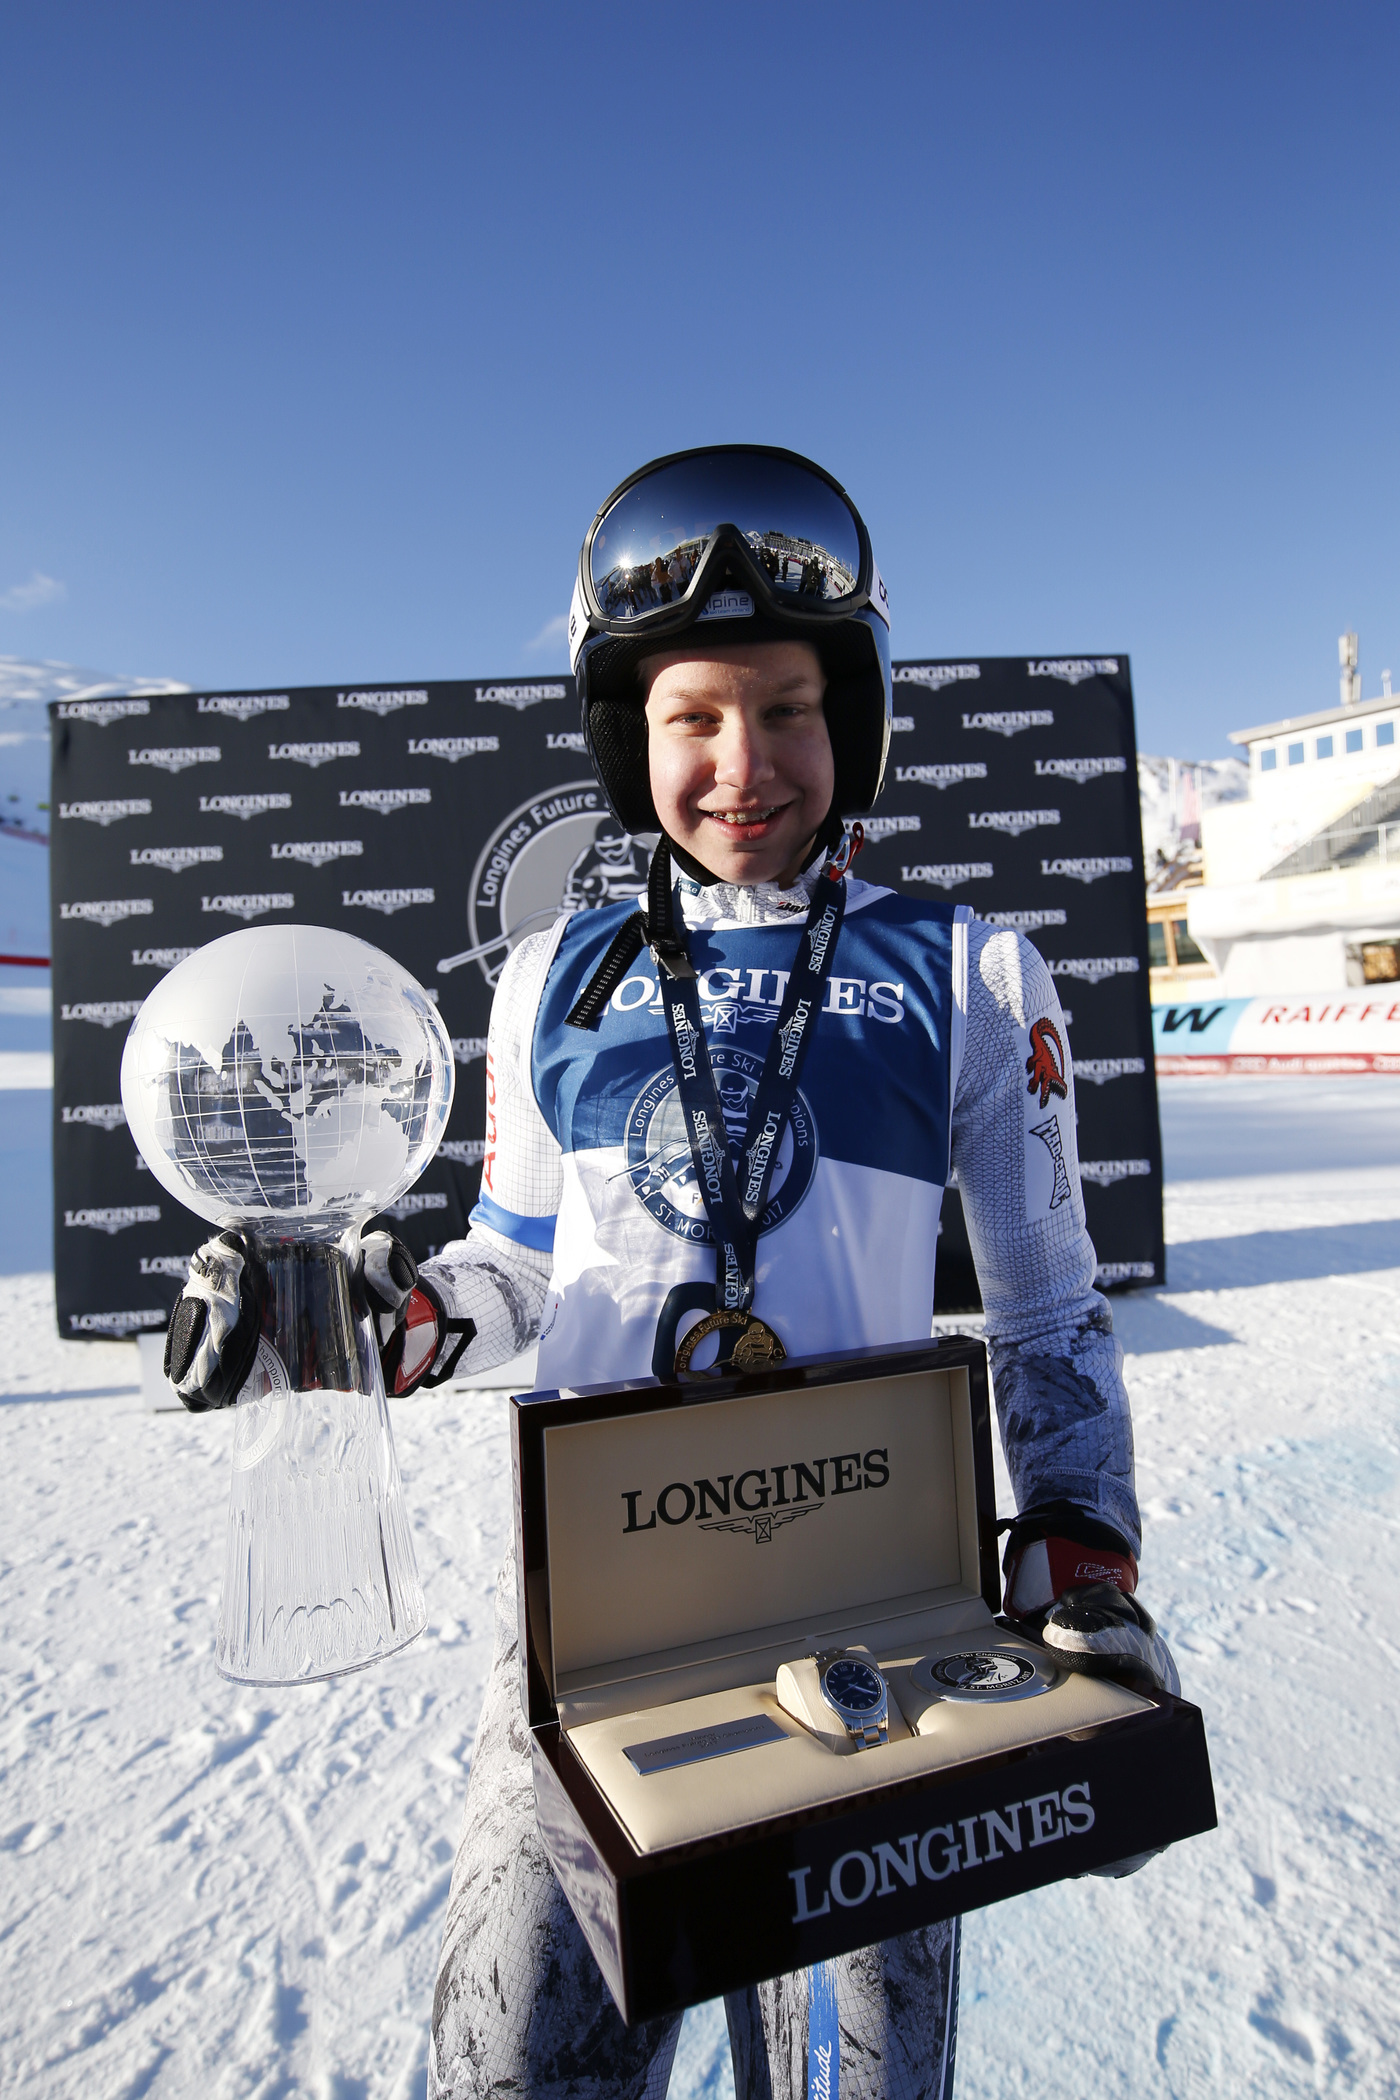 Longines Alpine Skiing Event: LONGINES FUTURE SKI CHAMPIONS - THE BEST YOUNG FEMALE SKIERS 29